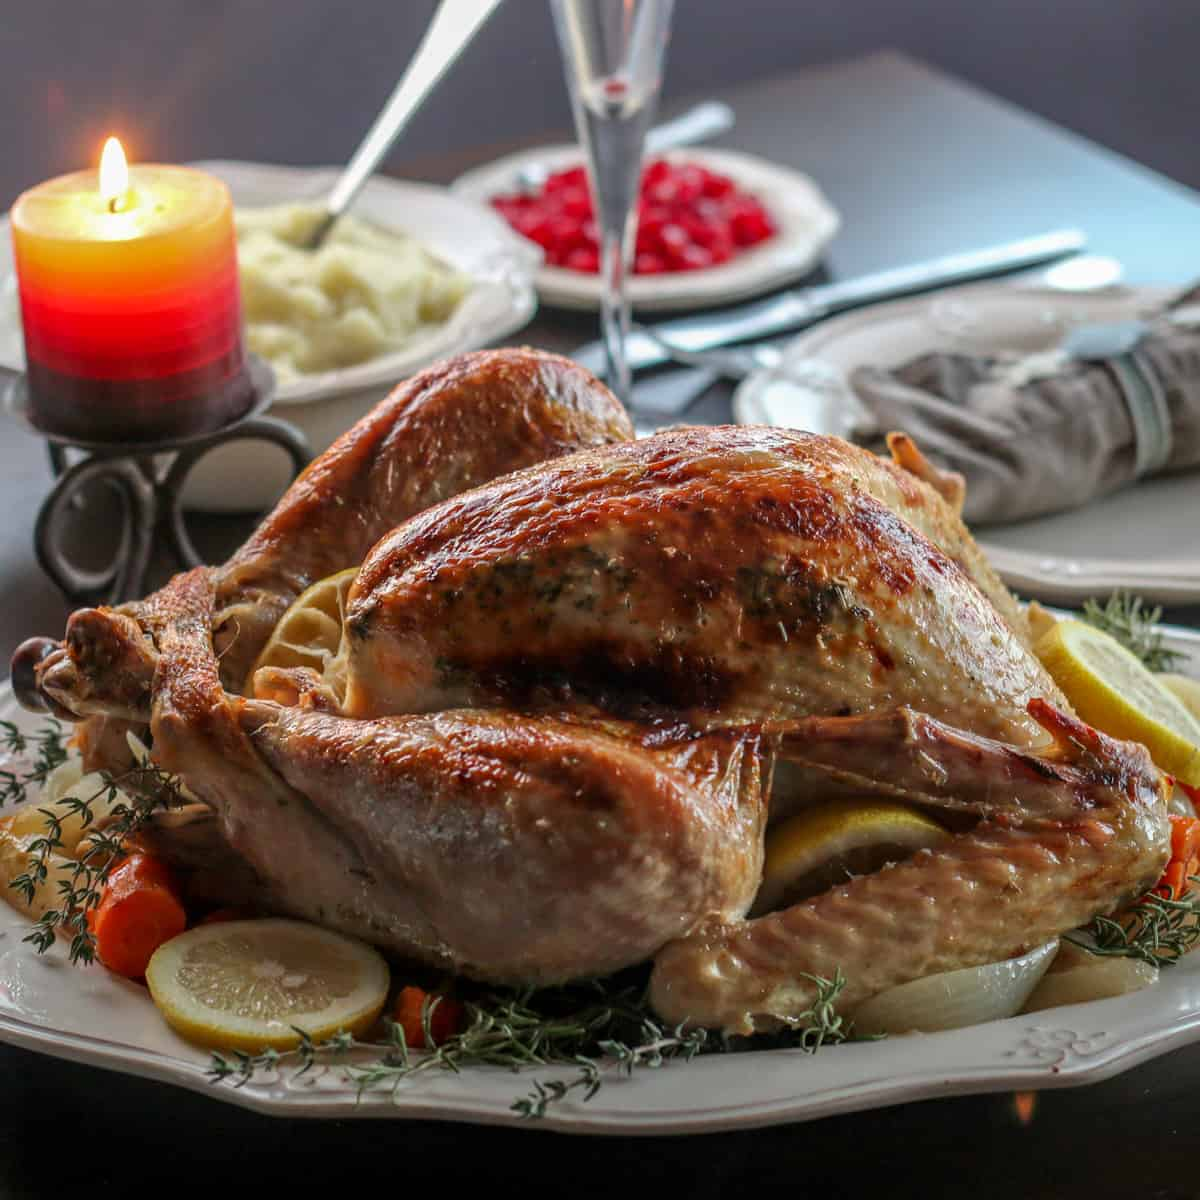 A roasted turkey on a platter garnished with lemon slices, thyme, and roasted vegetables.